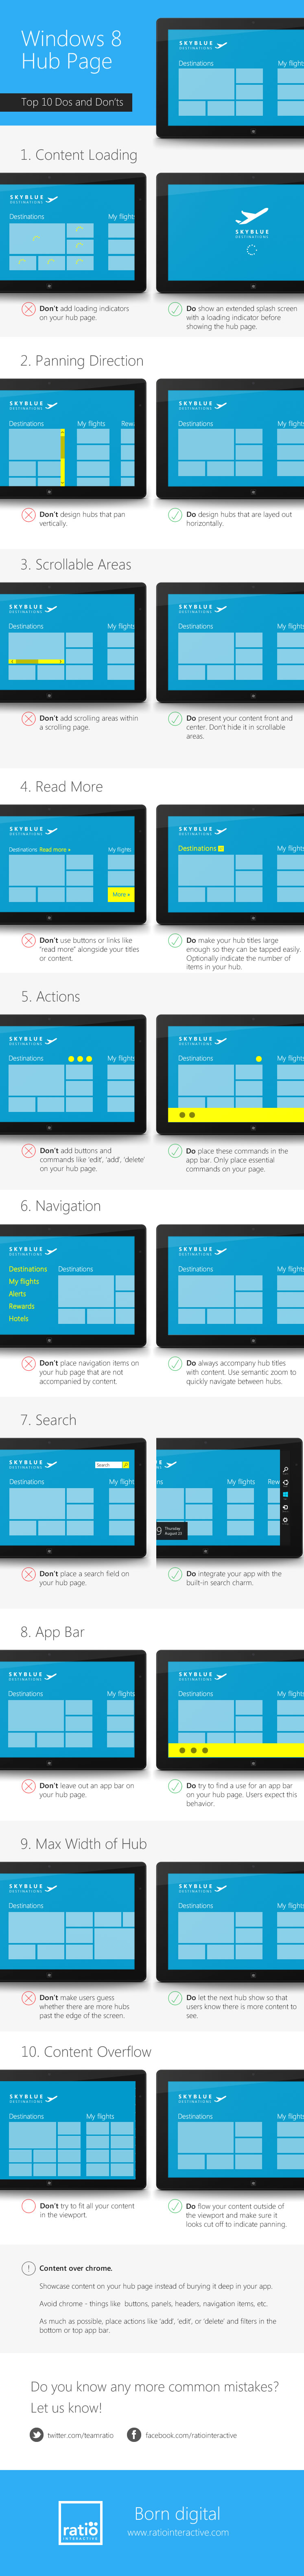 Windows 8 Hub Pages Top 10 Dos And Don Ts Interface Utilisateur Interface Graphique Ressources